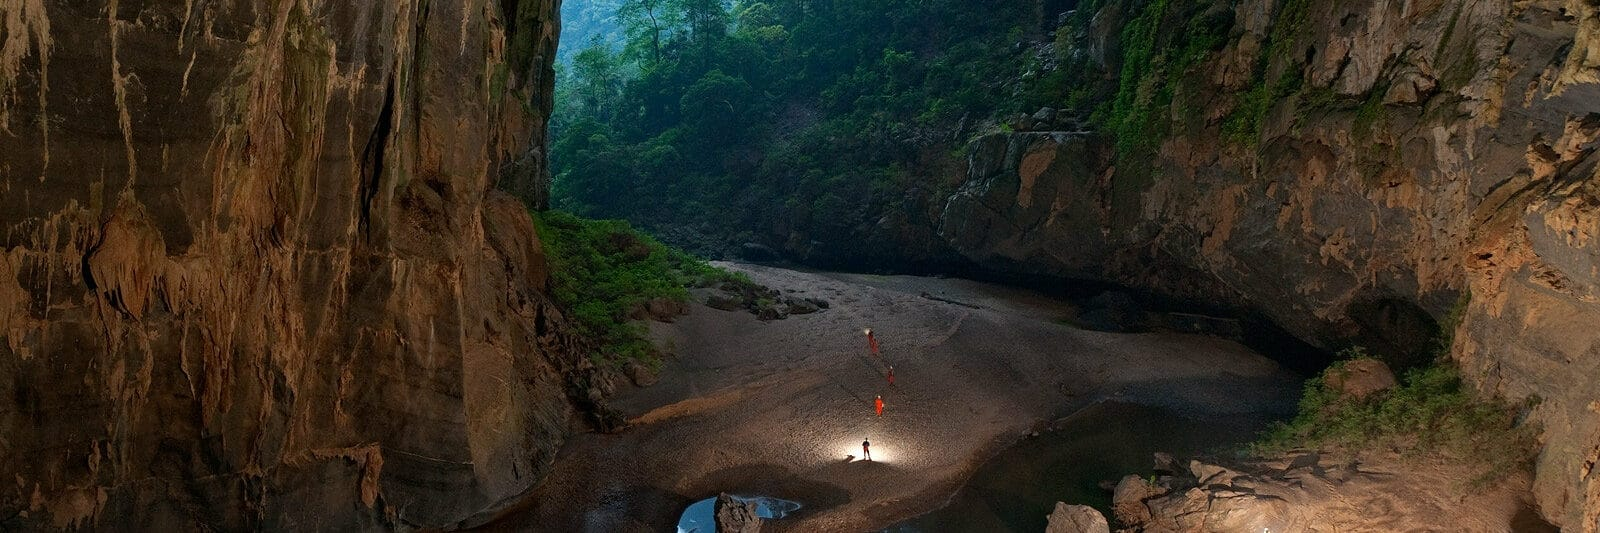 Image of the entrance of Hang Son Doong (cave) in Quang Binh, Vietnam